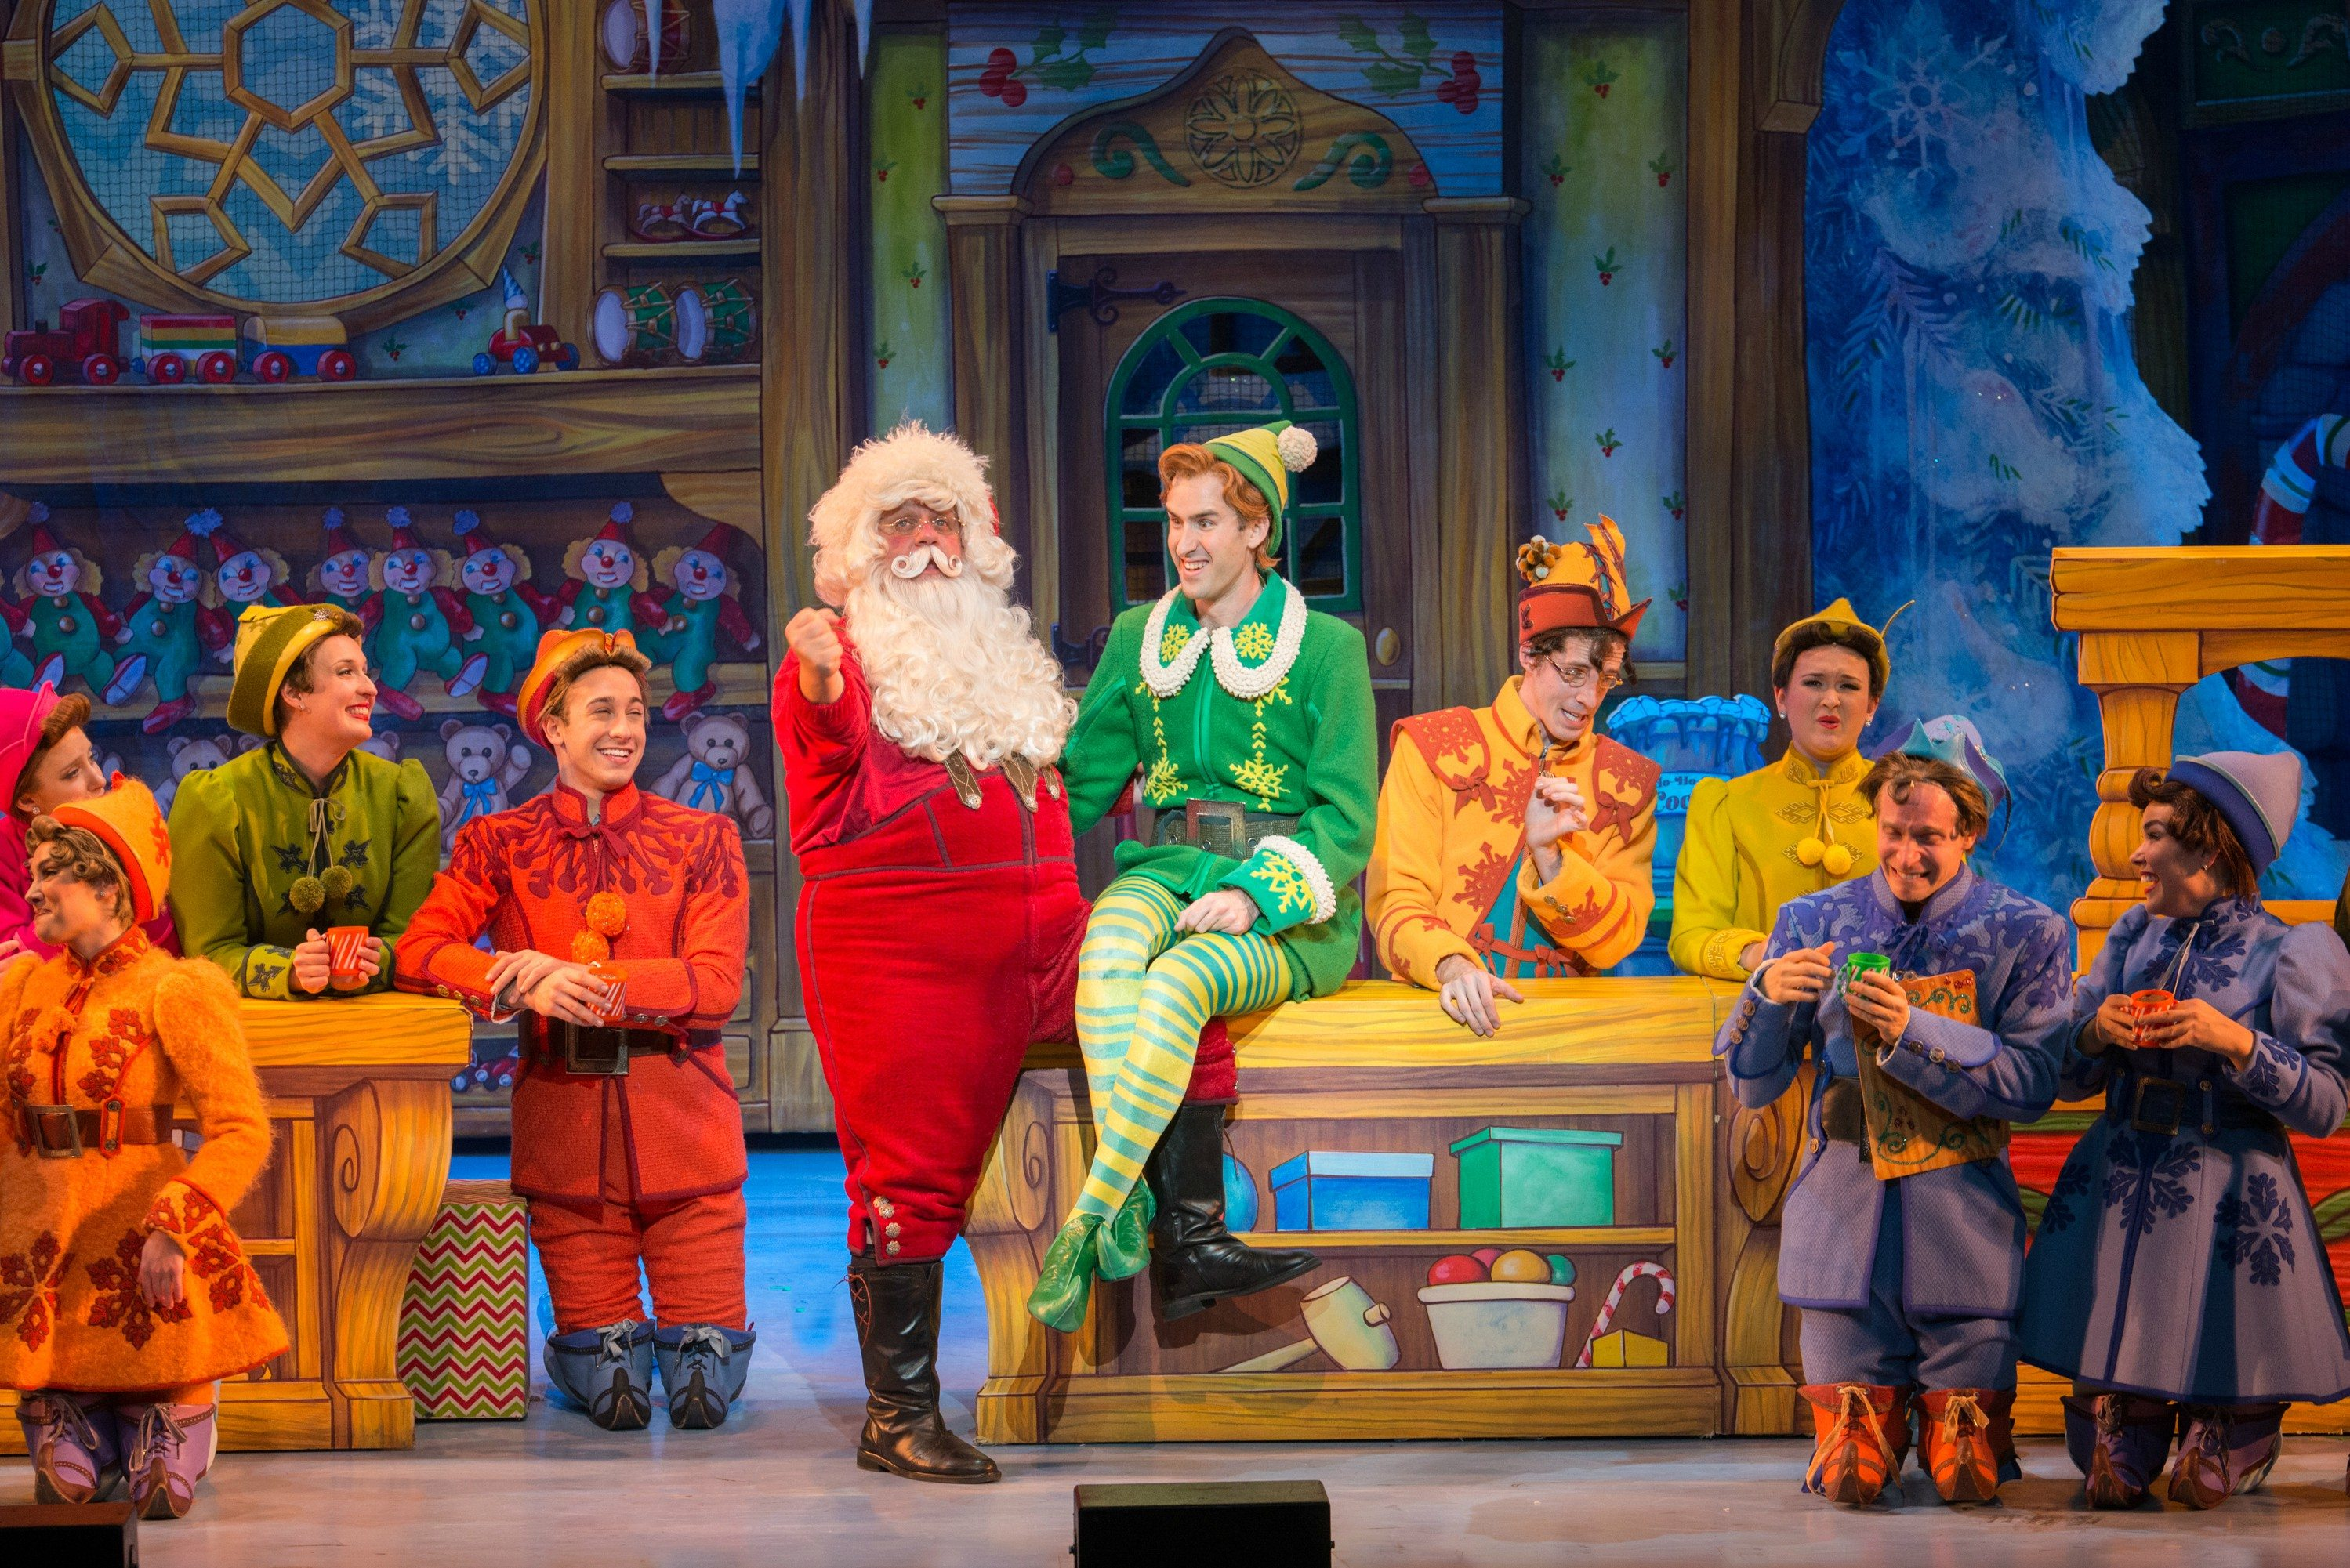 """COURTESY AMY BOYLE PHOTOGRAPHYKen Clement plays Santa and Eric Williams plays Buddy the elf in the stage musical """"Elf."""""""